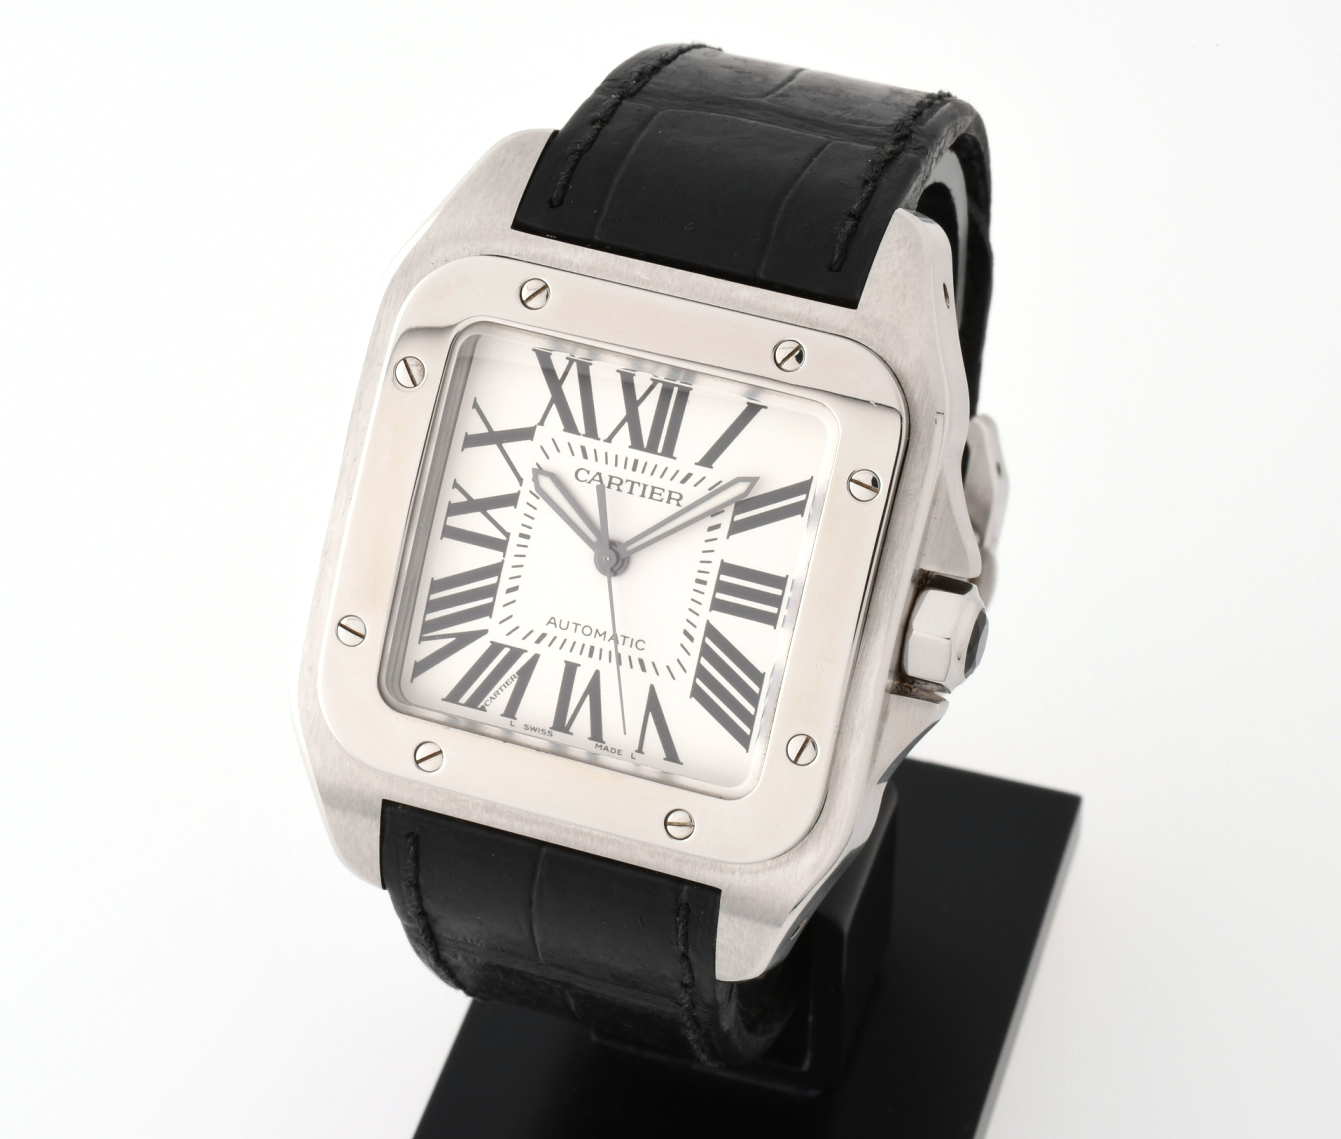 Cartier カルティエ 紳士用腕時計 サントス100 LM W20073X8 SS 自動巻 【中古】